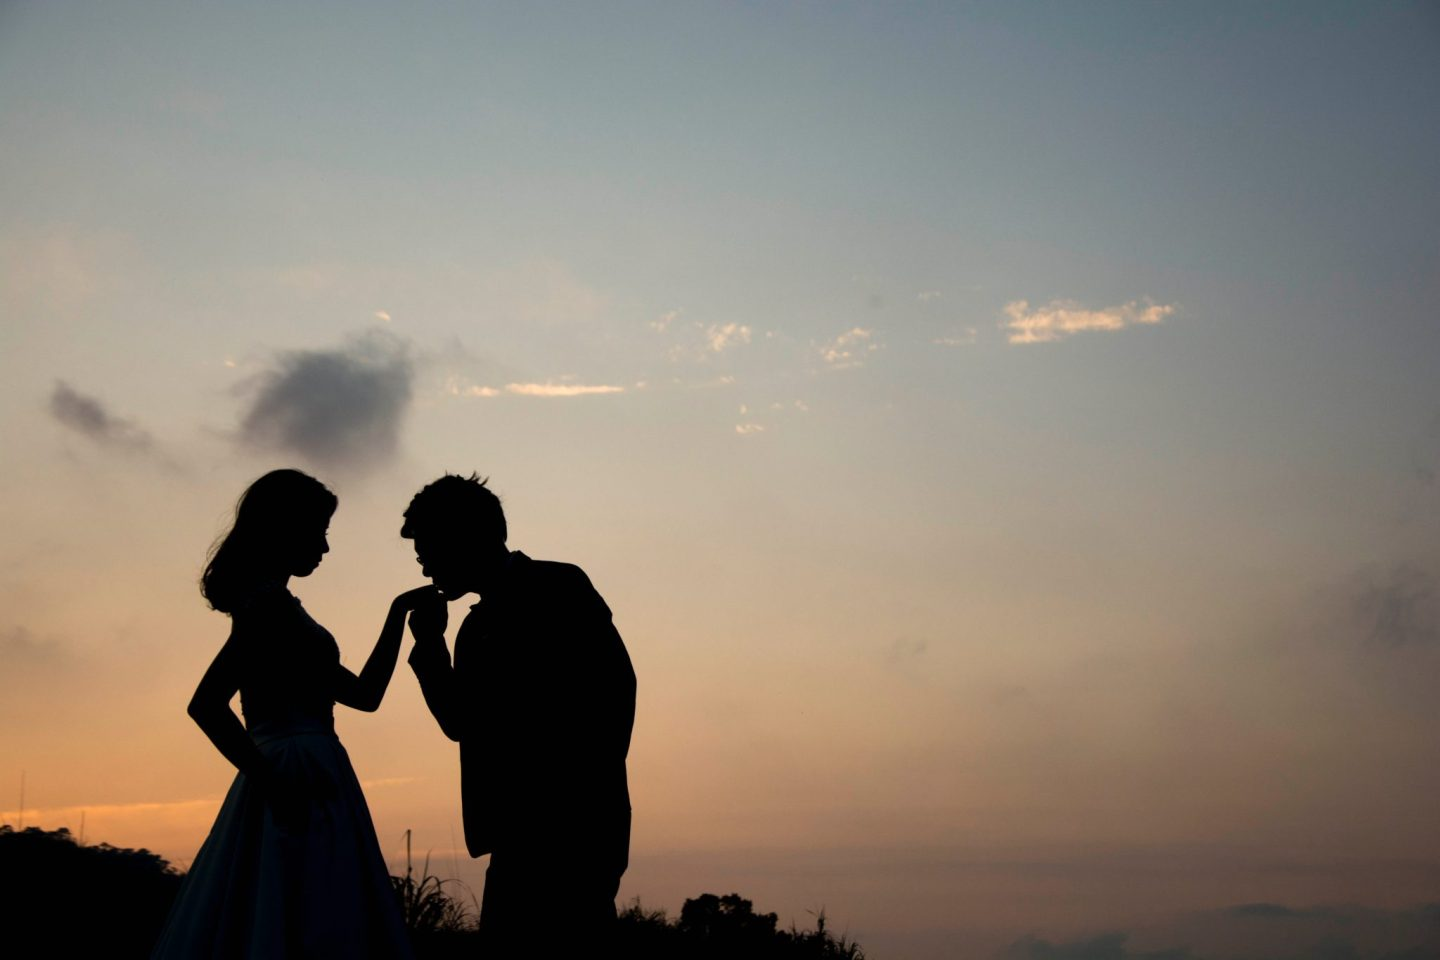 a silhouette of a man and a woman. The man is kissing them woman's hand.